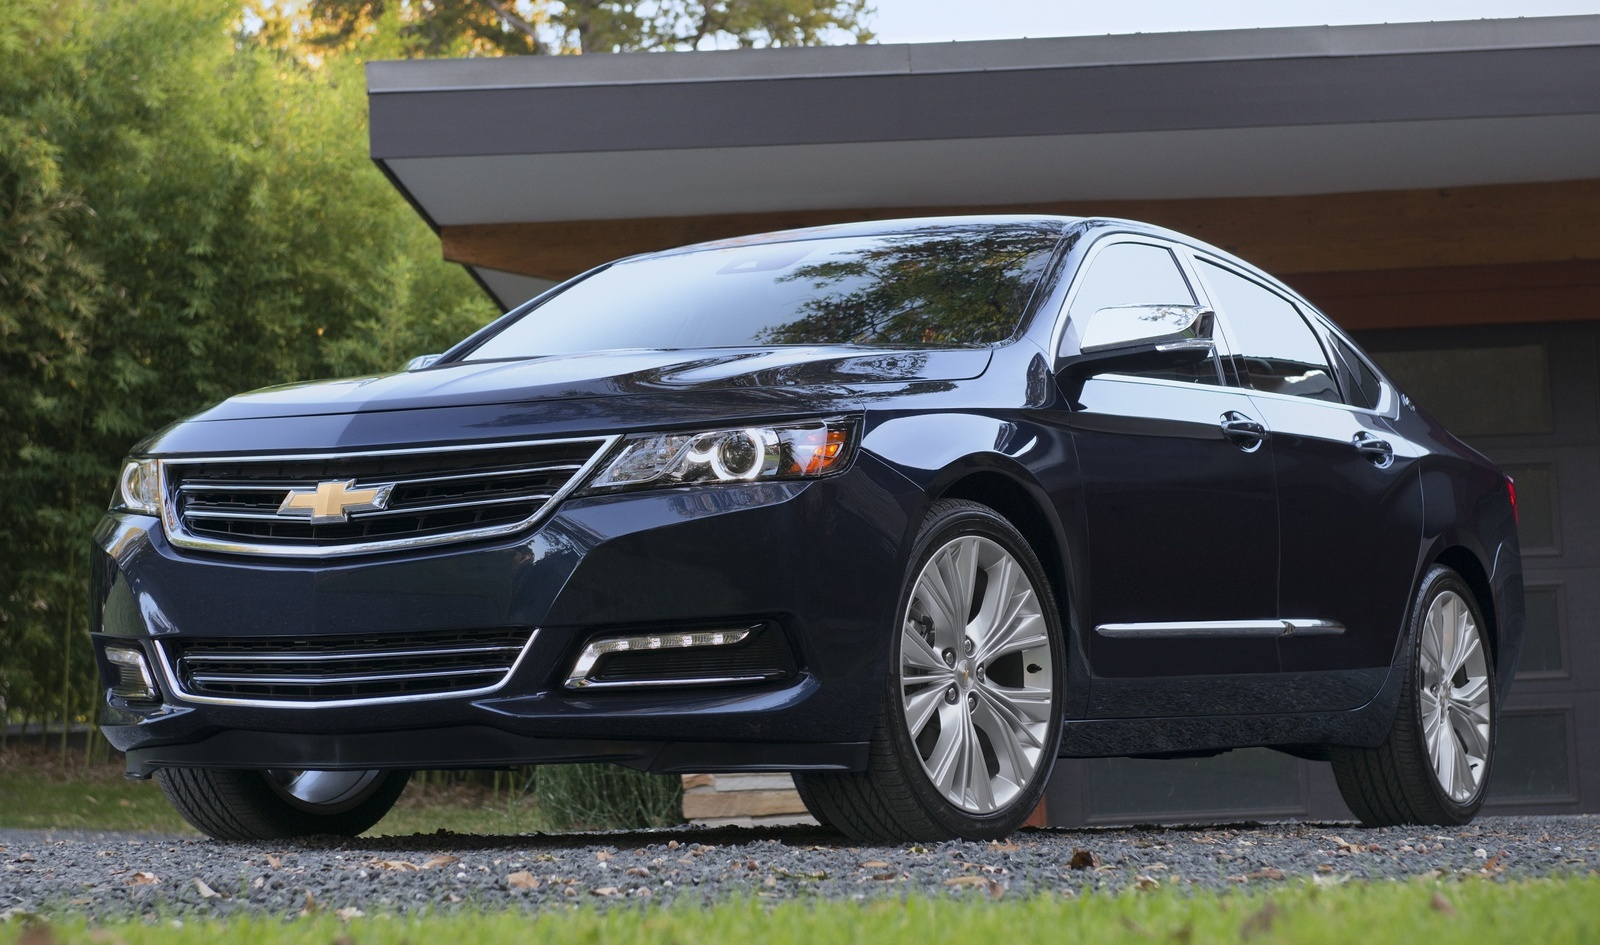 New 2015 2016 Chevrolet Impala For Sale Cargurus